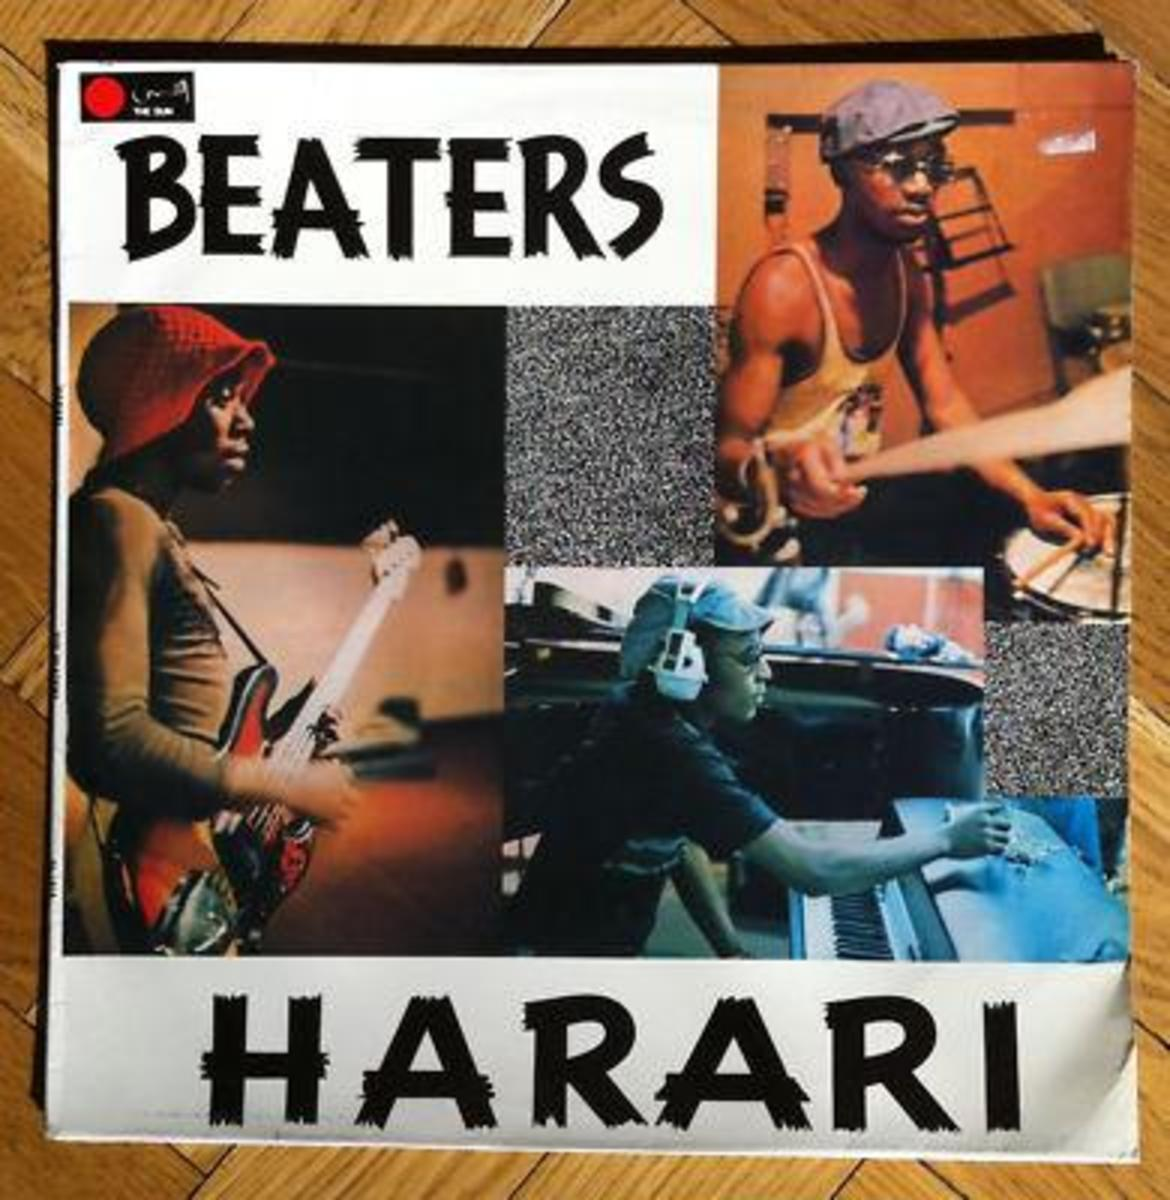 When the Beaters chaged their name to Harari- on album cover - from left to right- Alec Khaoli(red Hat; Selby Ntuli, on keyboards and Sipho Mabusi on drums(not in Picture is Saitana)